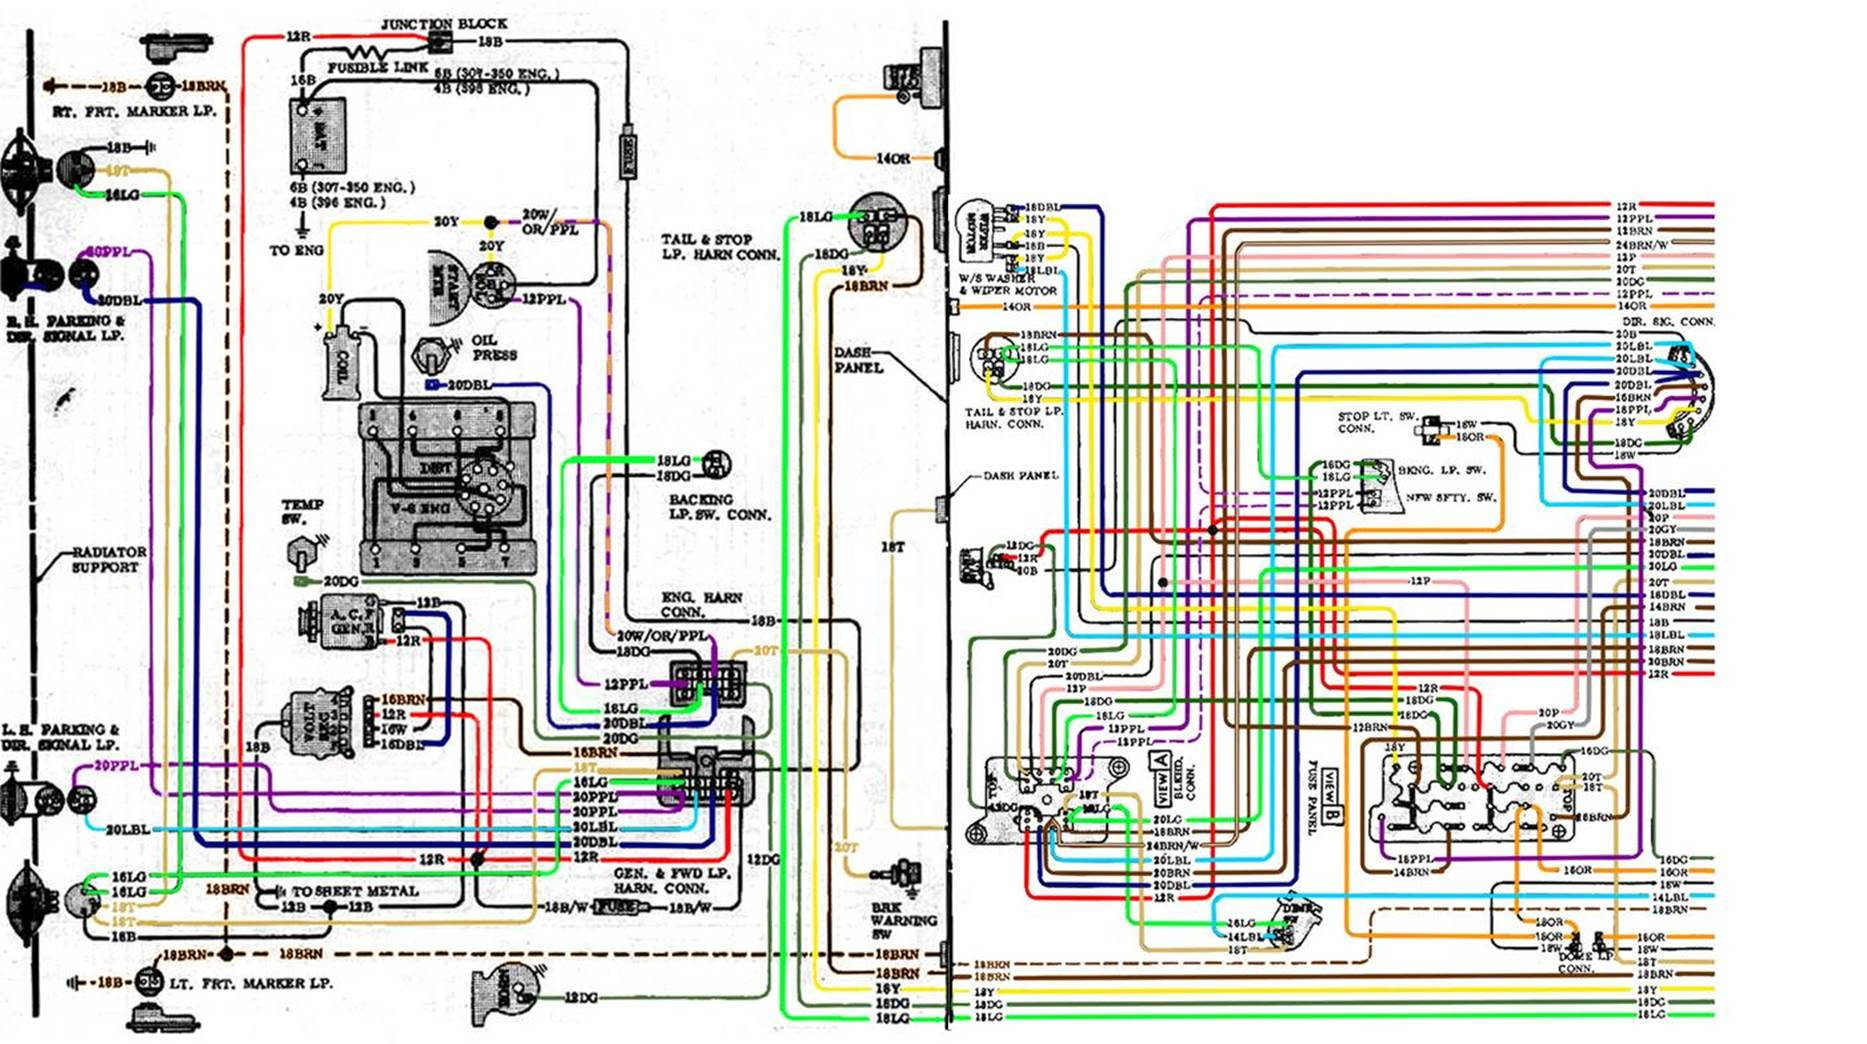 wiring diagram for 1986 chevrolet monte carlo